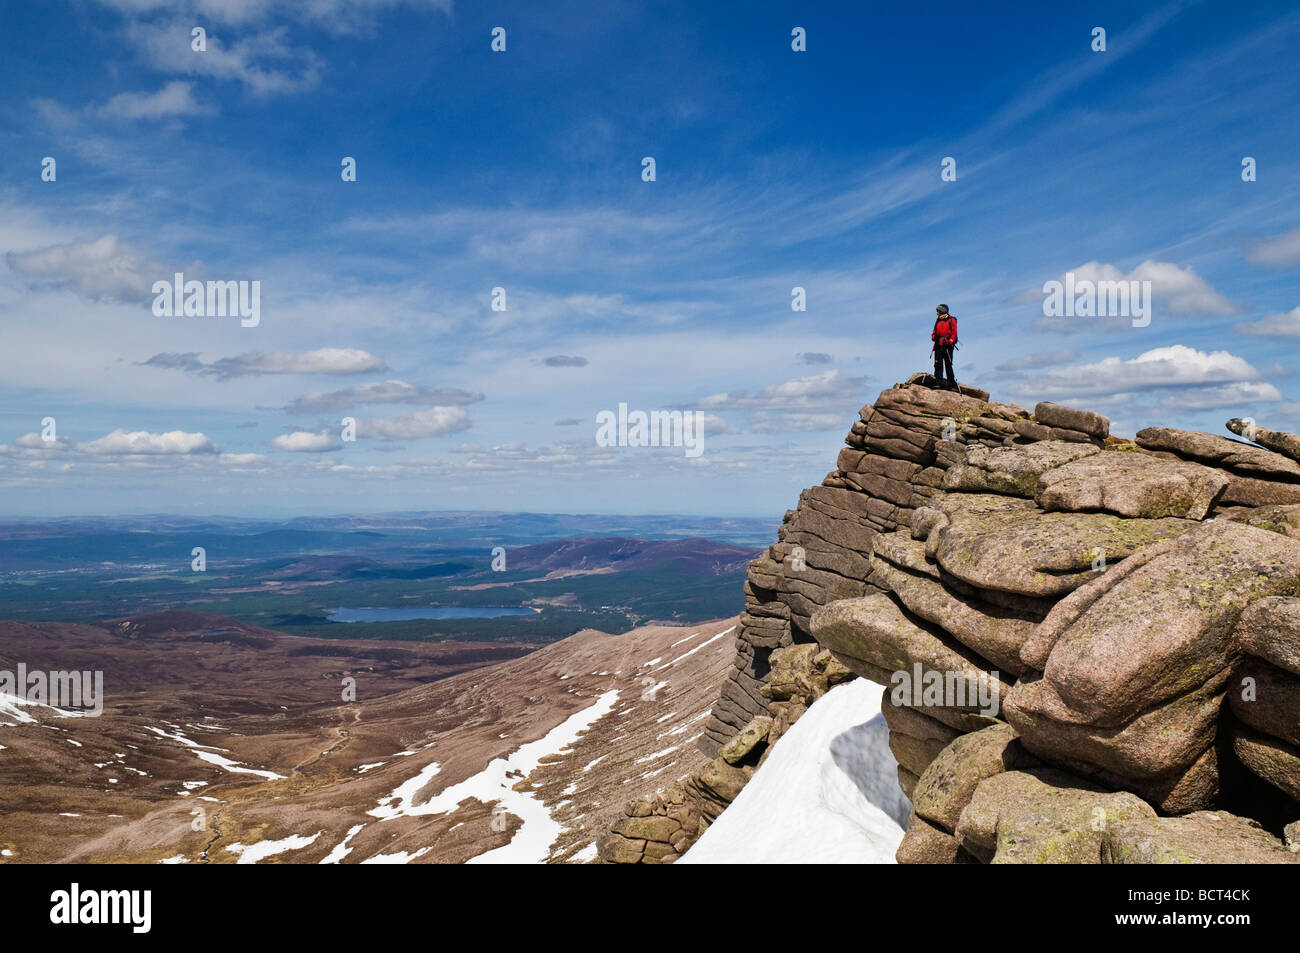 Female hiker stands on rocky outlook and enjoys view, Cairngorms national park, Scotland - Stock Image